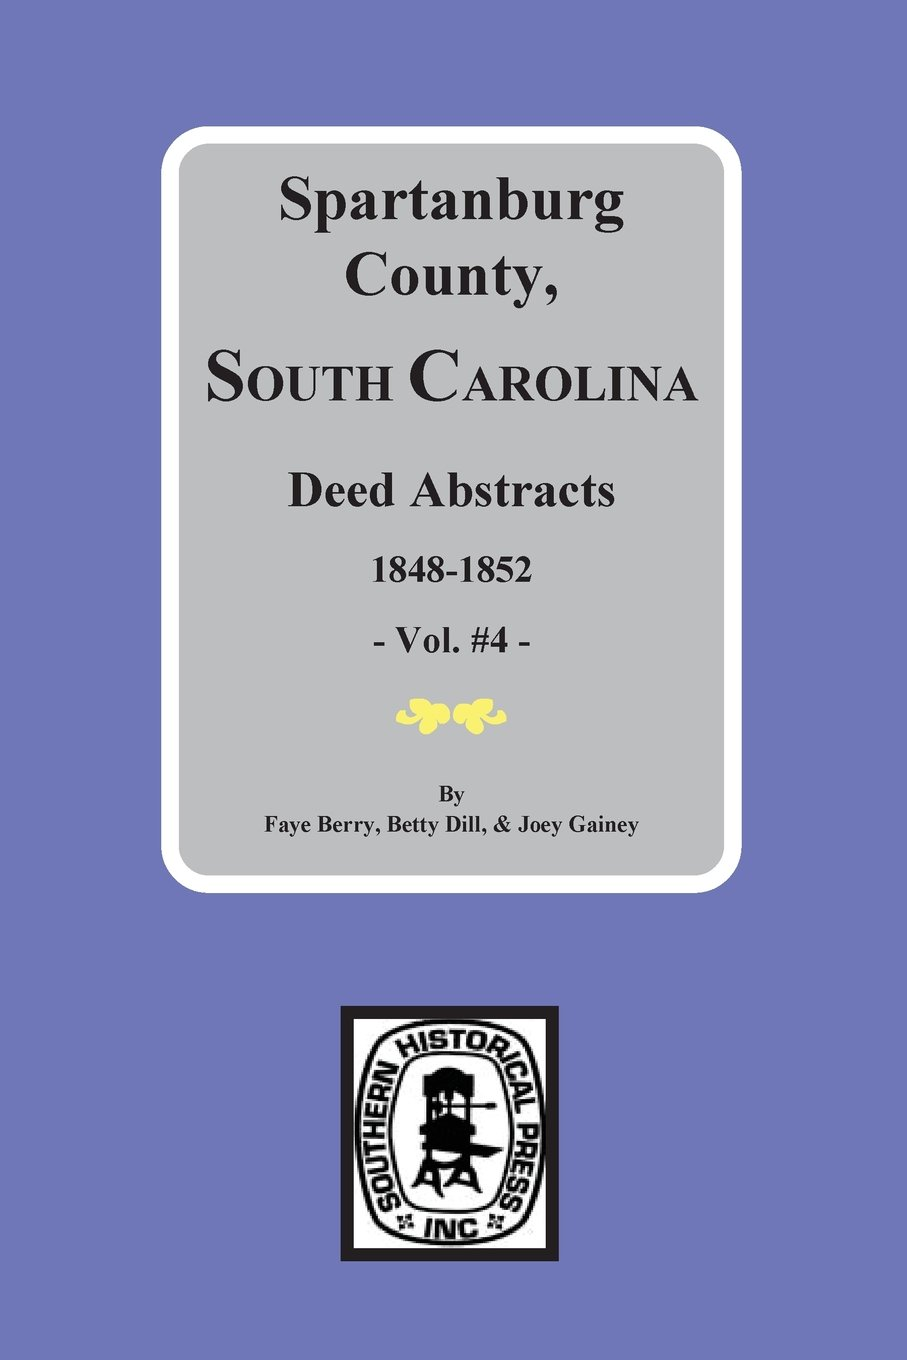 Spartanburg County, SC Deed Abstracts, 1848-1852 (Vol. #4) PDF